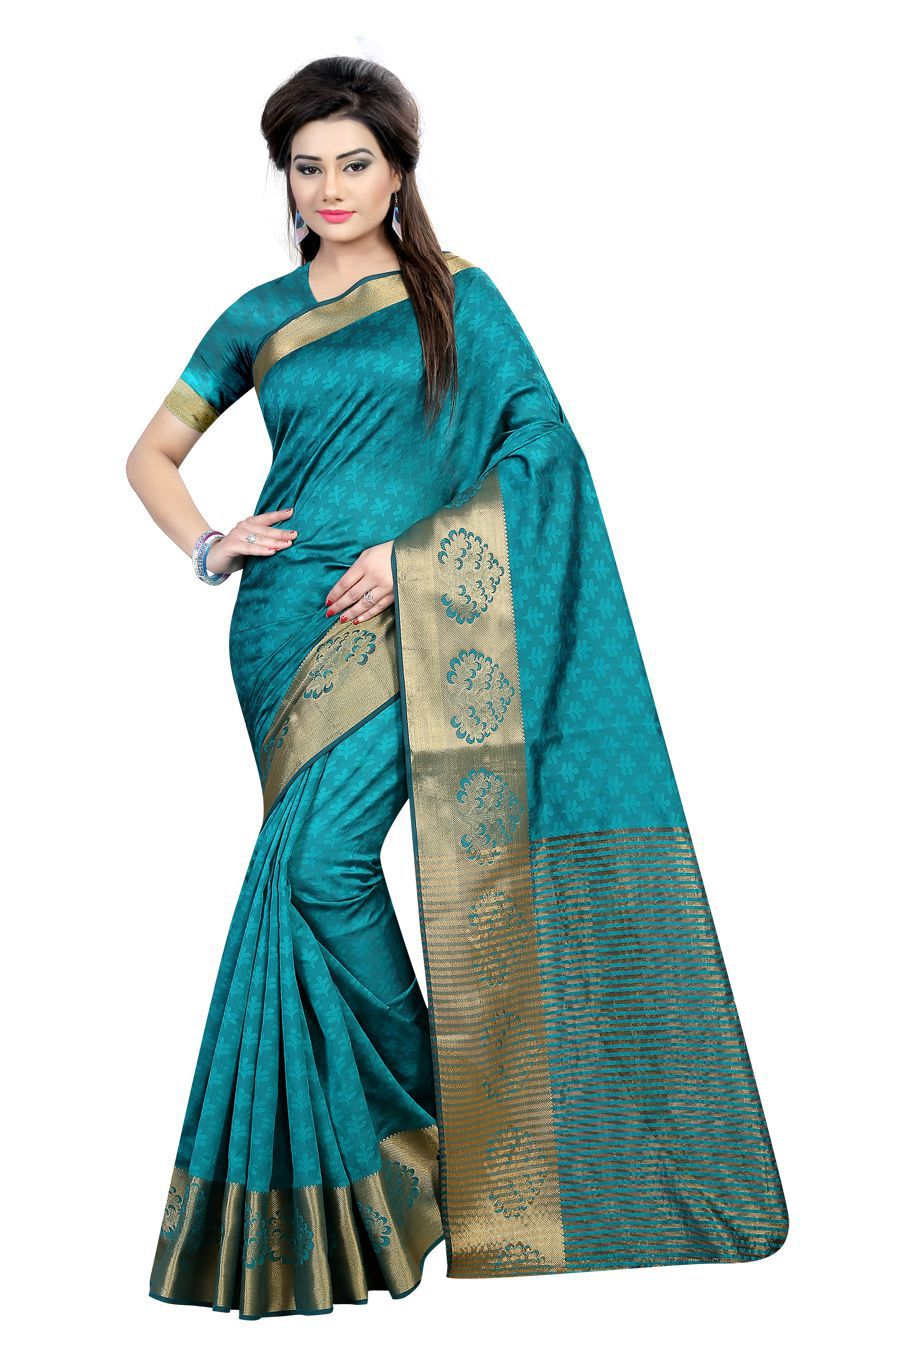 EK PRASANG Turquoise Cotton Poly Saree